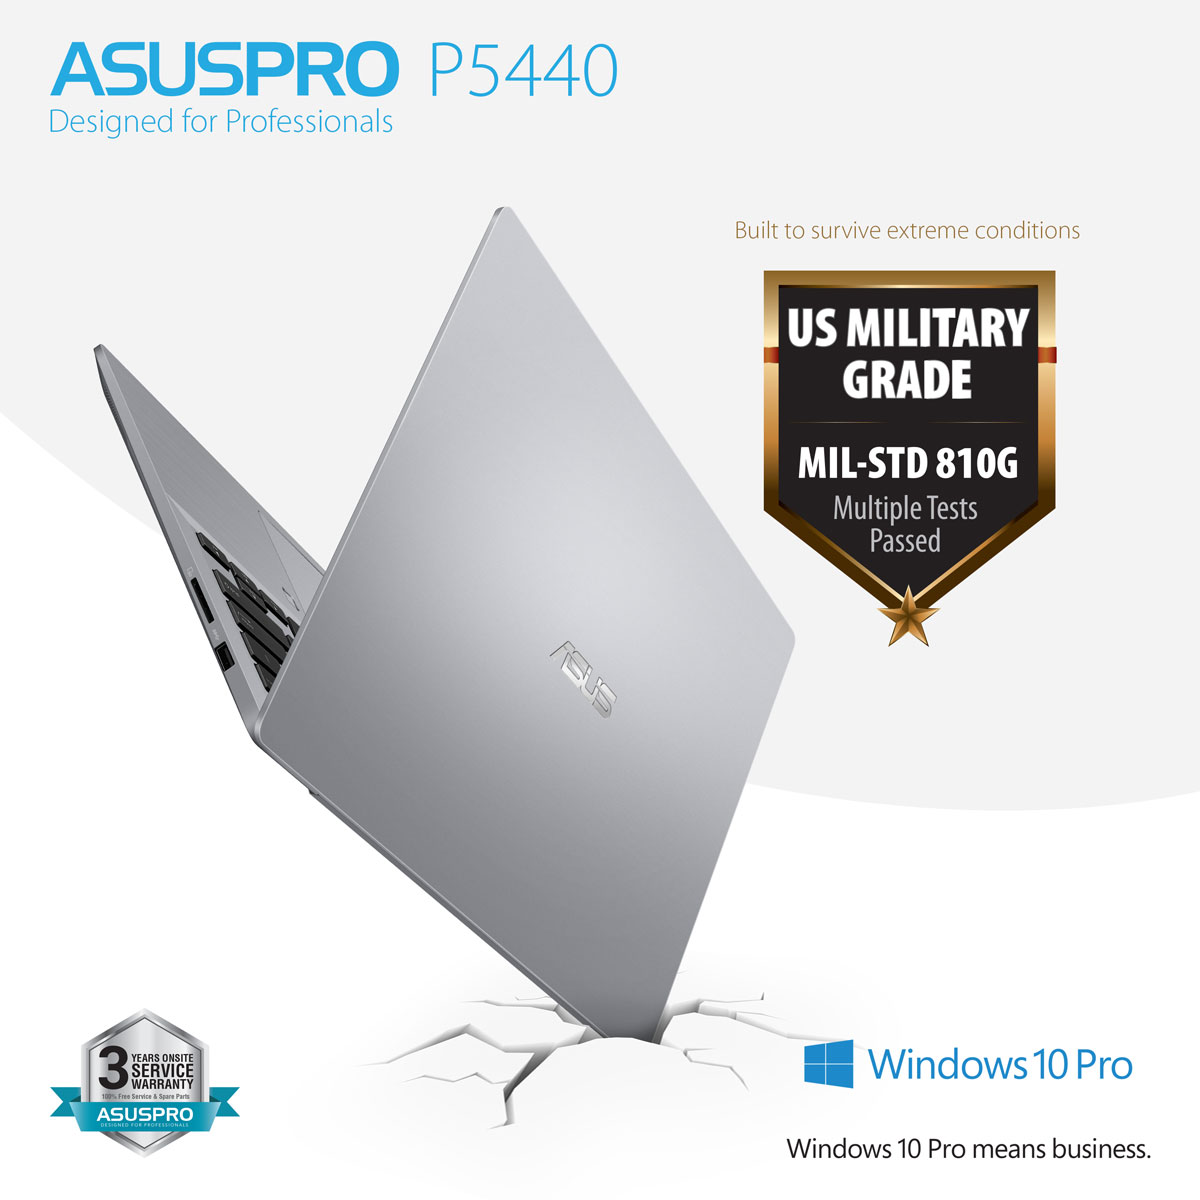 asuspro p5440, The ASUSPRO P5440 is the perfect partner for doing business, Gadget Pilipinas